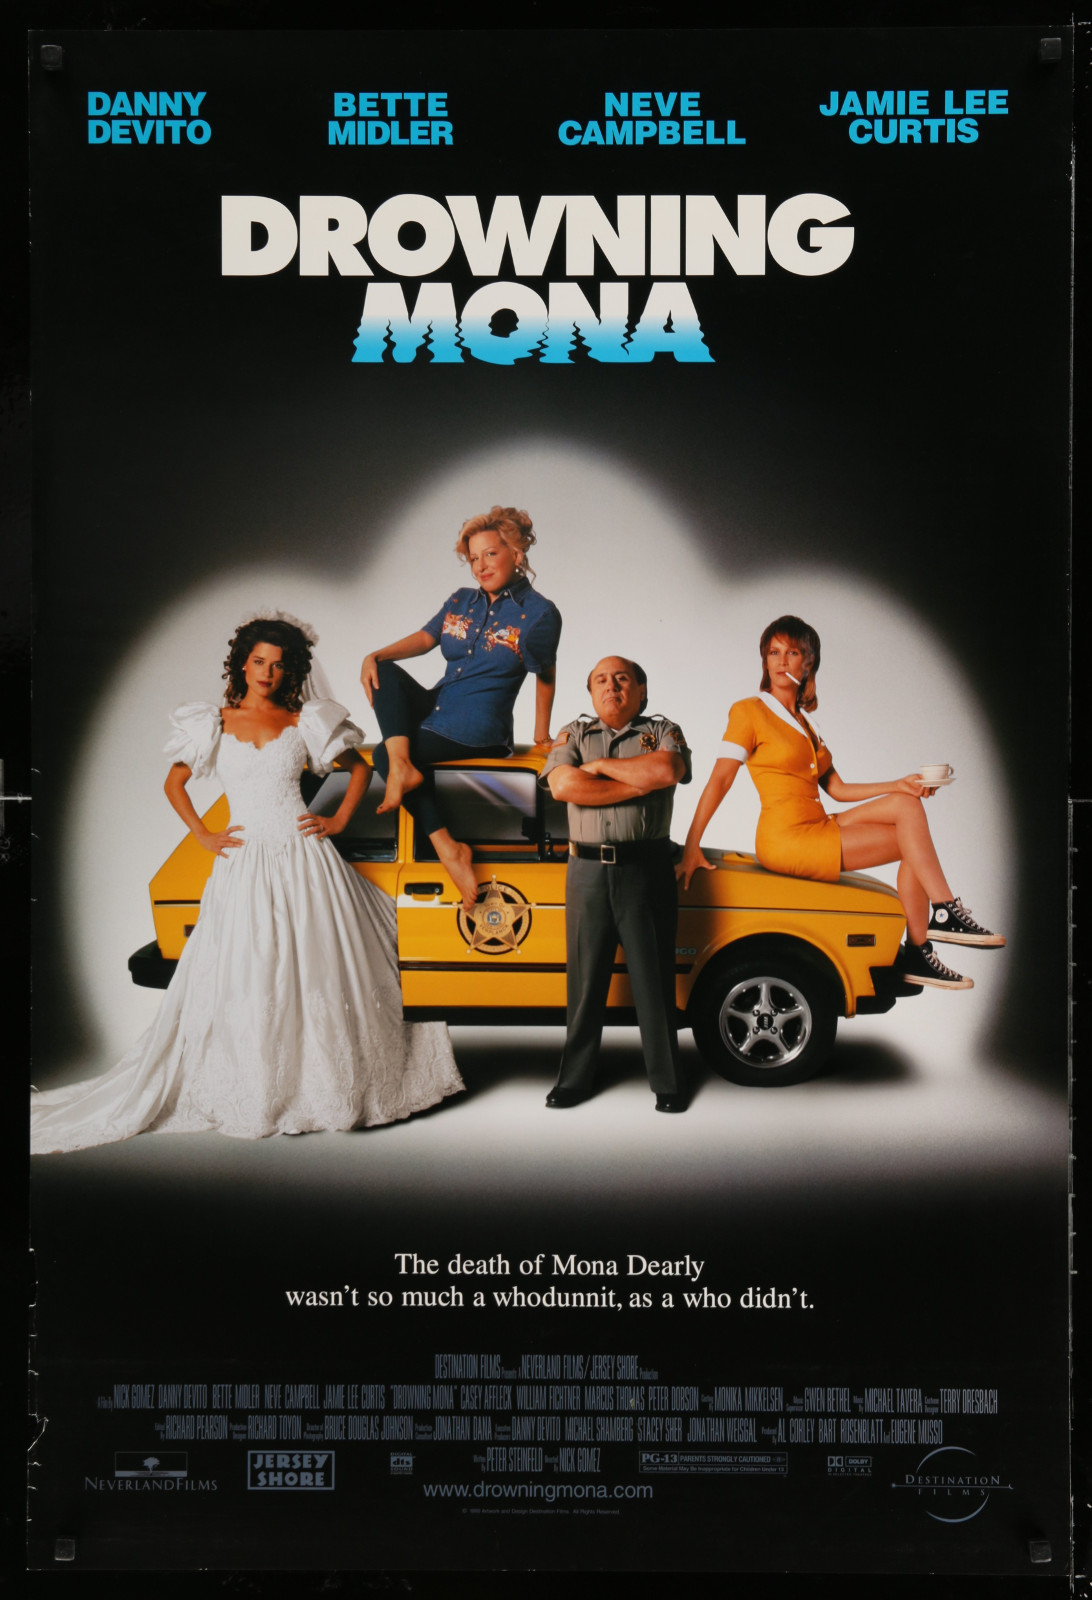 Drowning Mona 2A438 A Part Of A Lot 18 Unfolded Double-Sided 27X40 Mostly Comedy One-Sheets '90S-00S Great Movie Images!